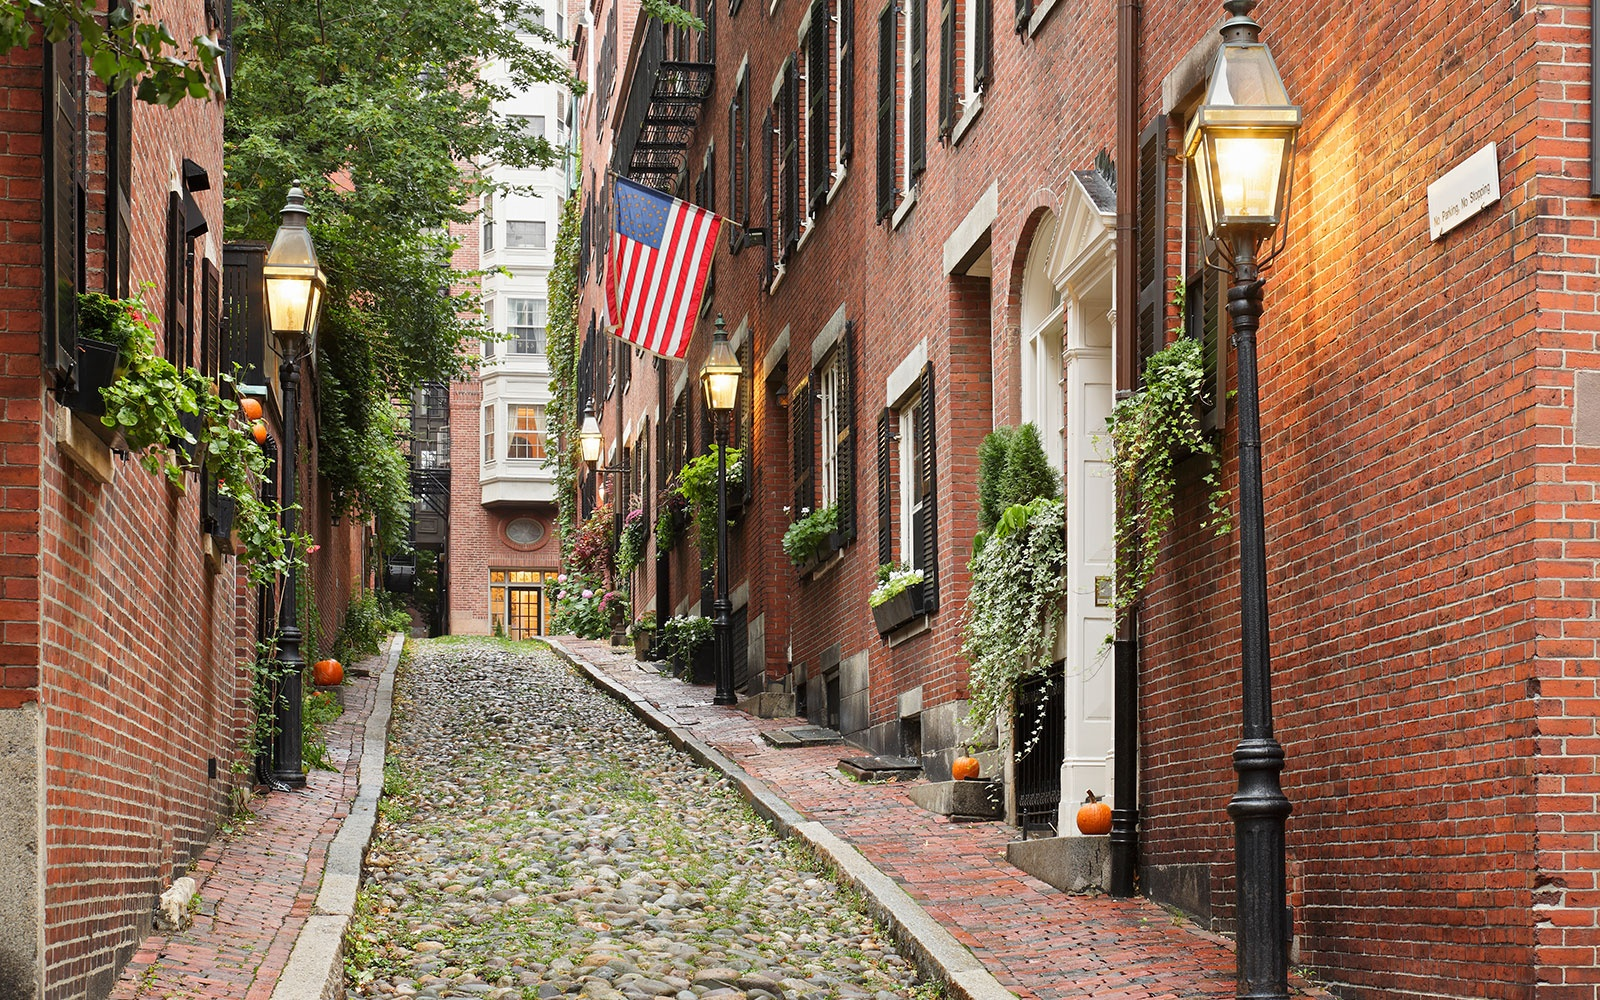 7 Boston - America 20 Charming Cities Travel Leisure